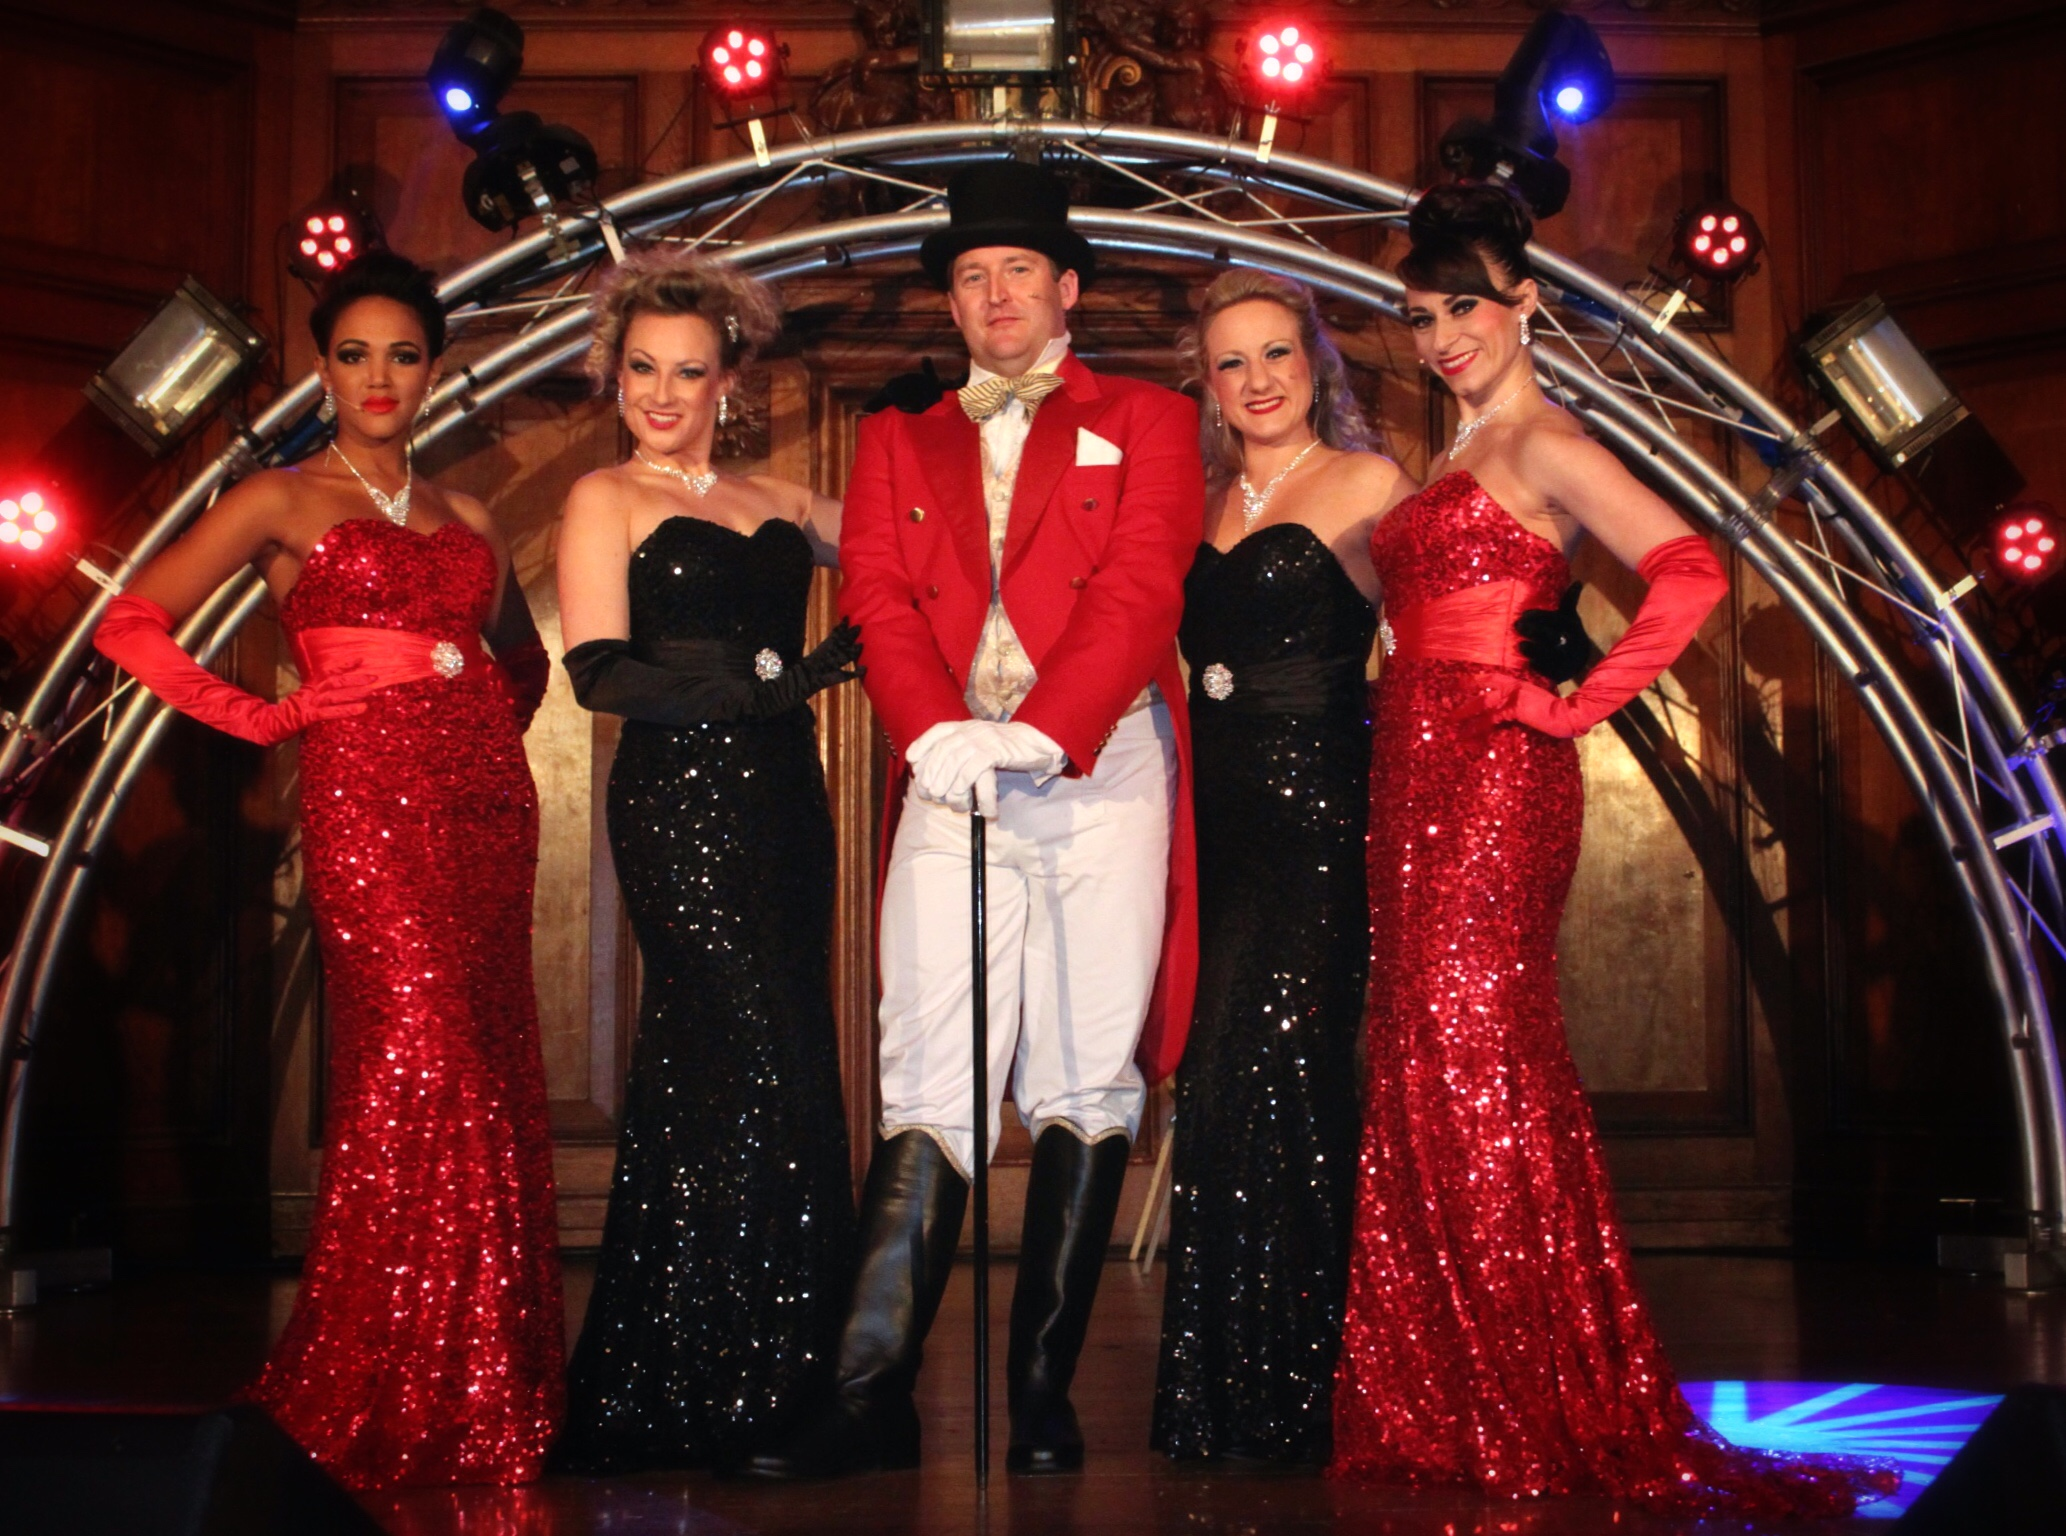 Our ringmaster and the Moulin girls